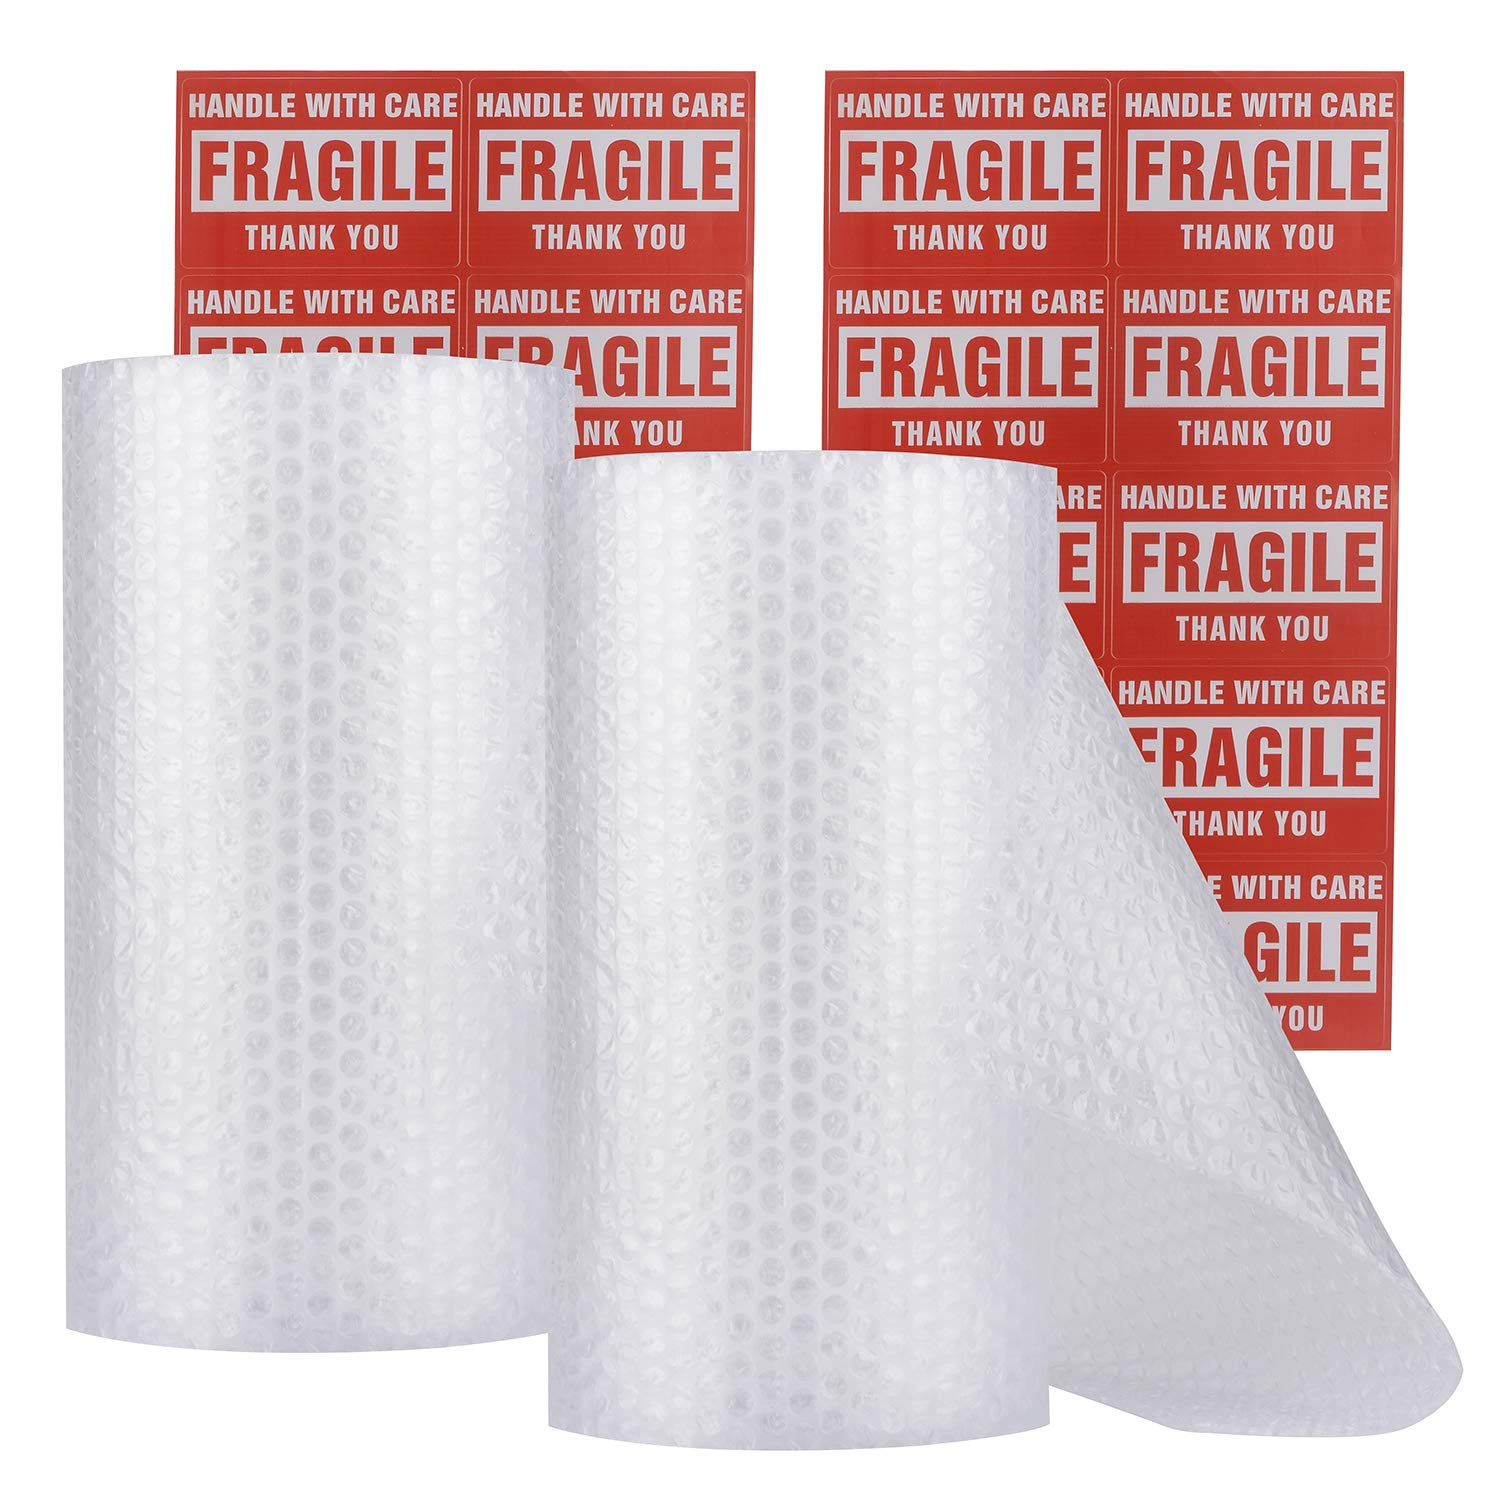 bubble wrap, where to buy bubble wrap, packing bubble wrap, bubble wrap packing materials